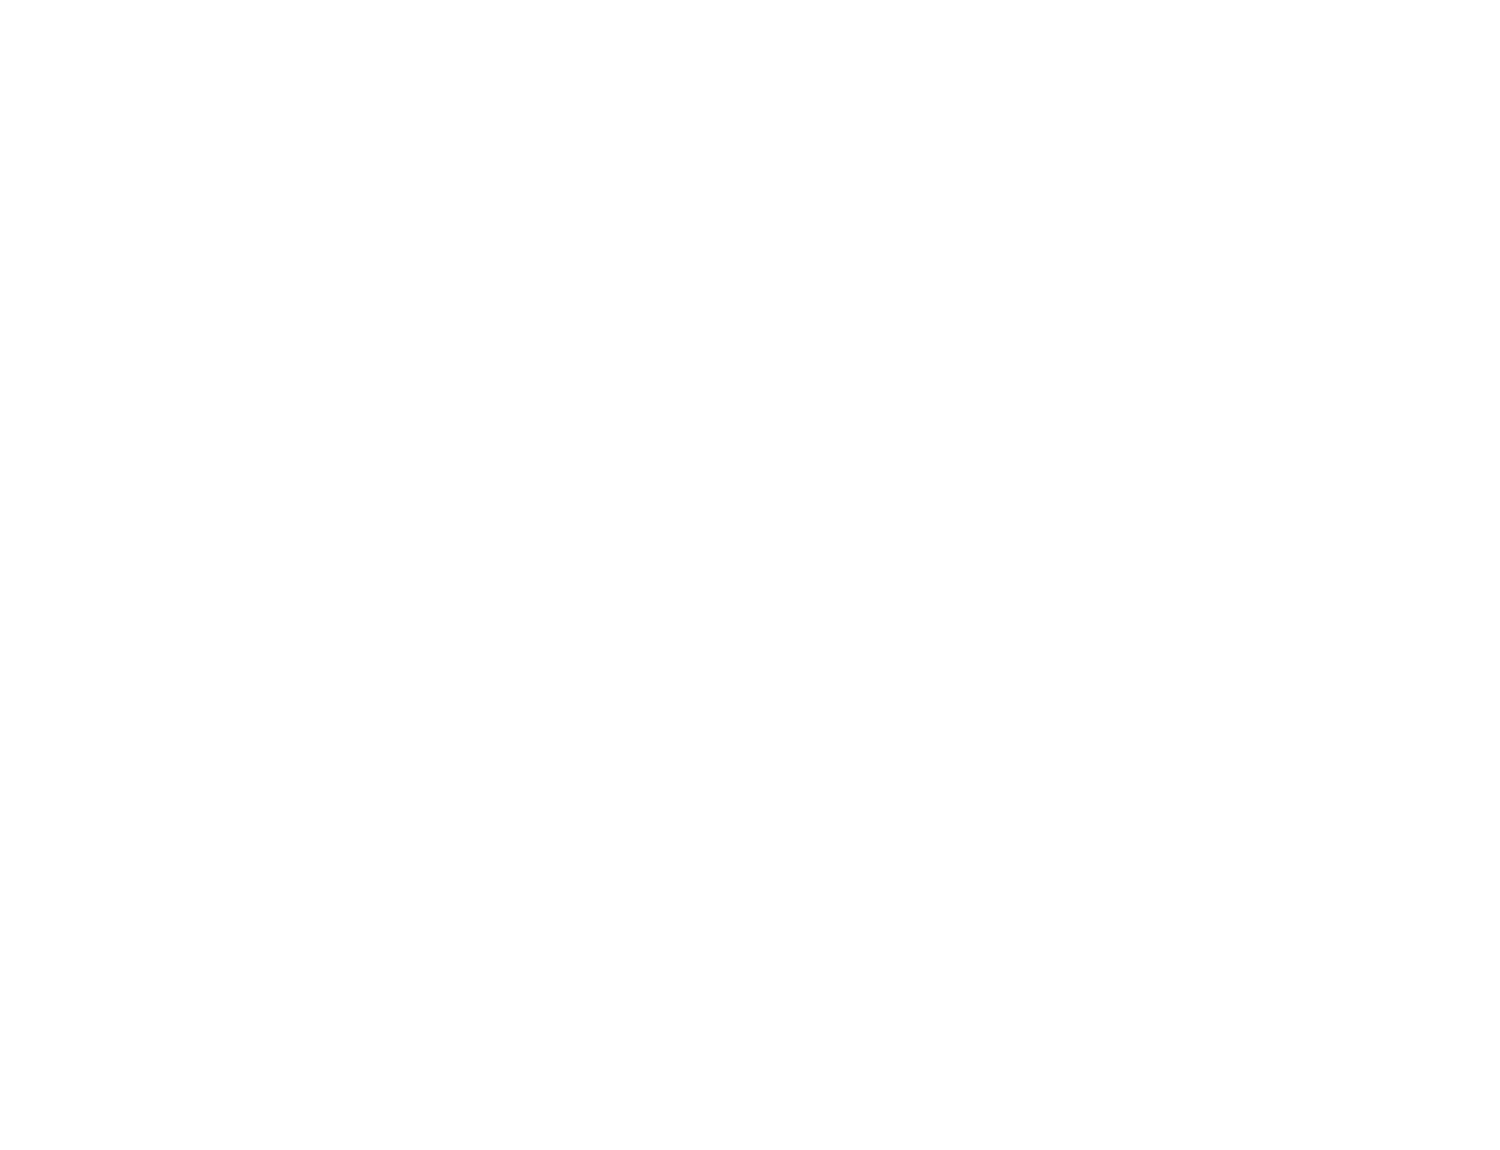 Pacific Breeze Marketing